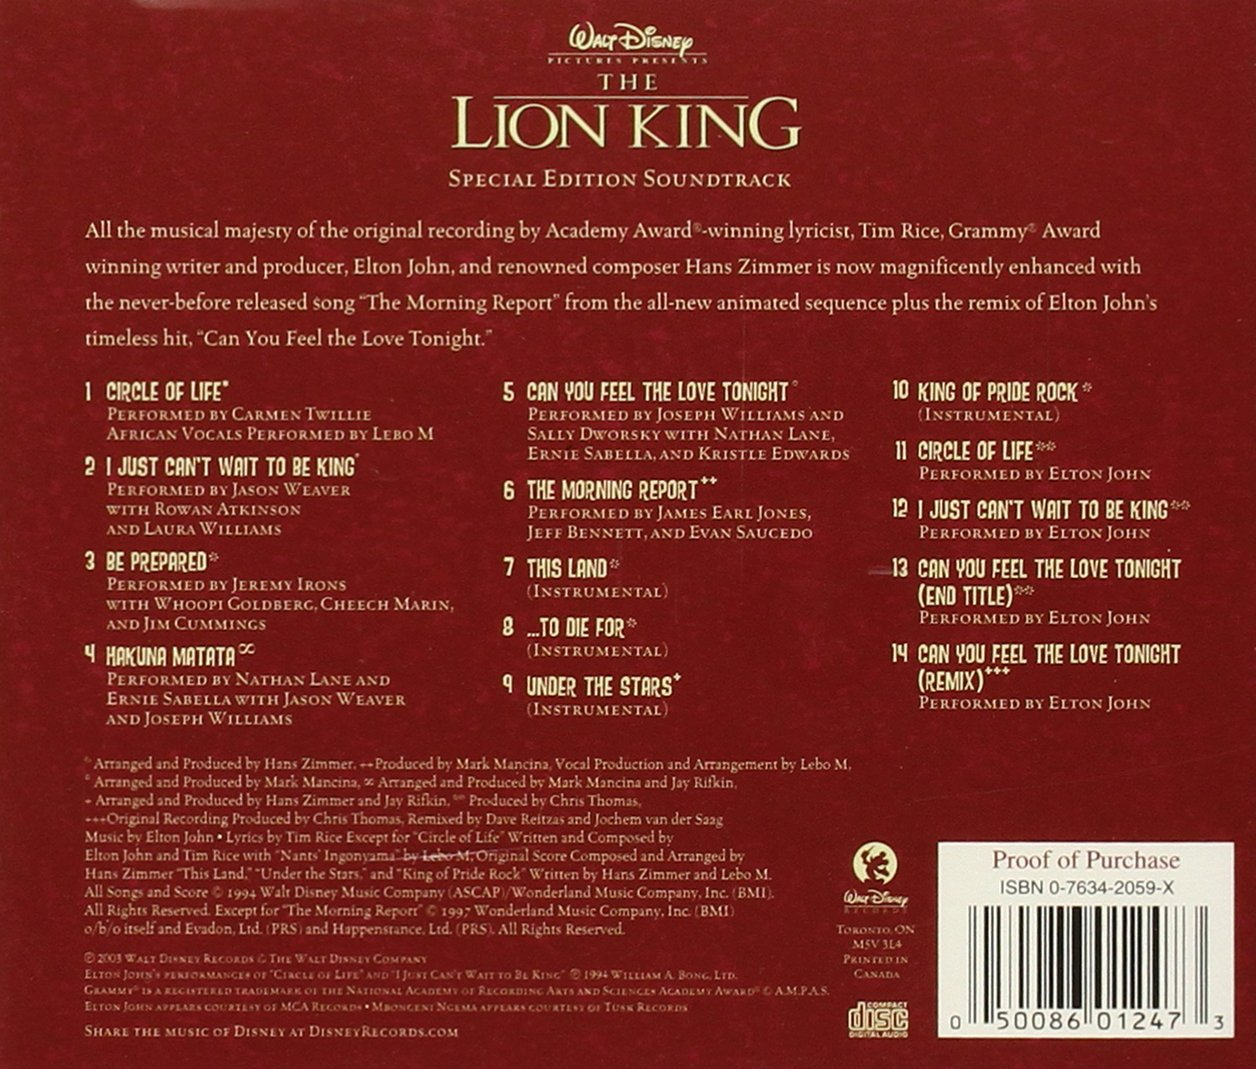 hans zimmer various artists the lion king special edition